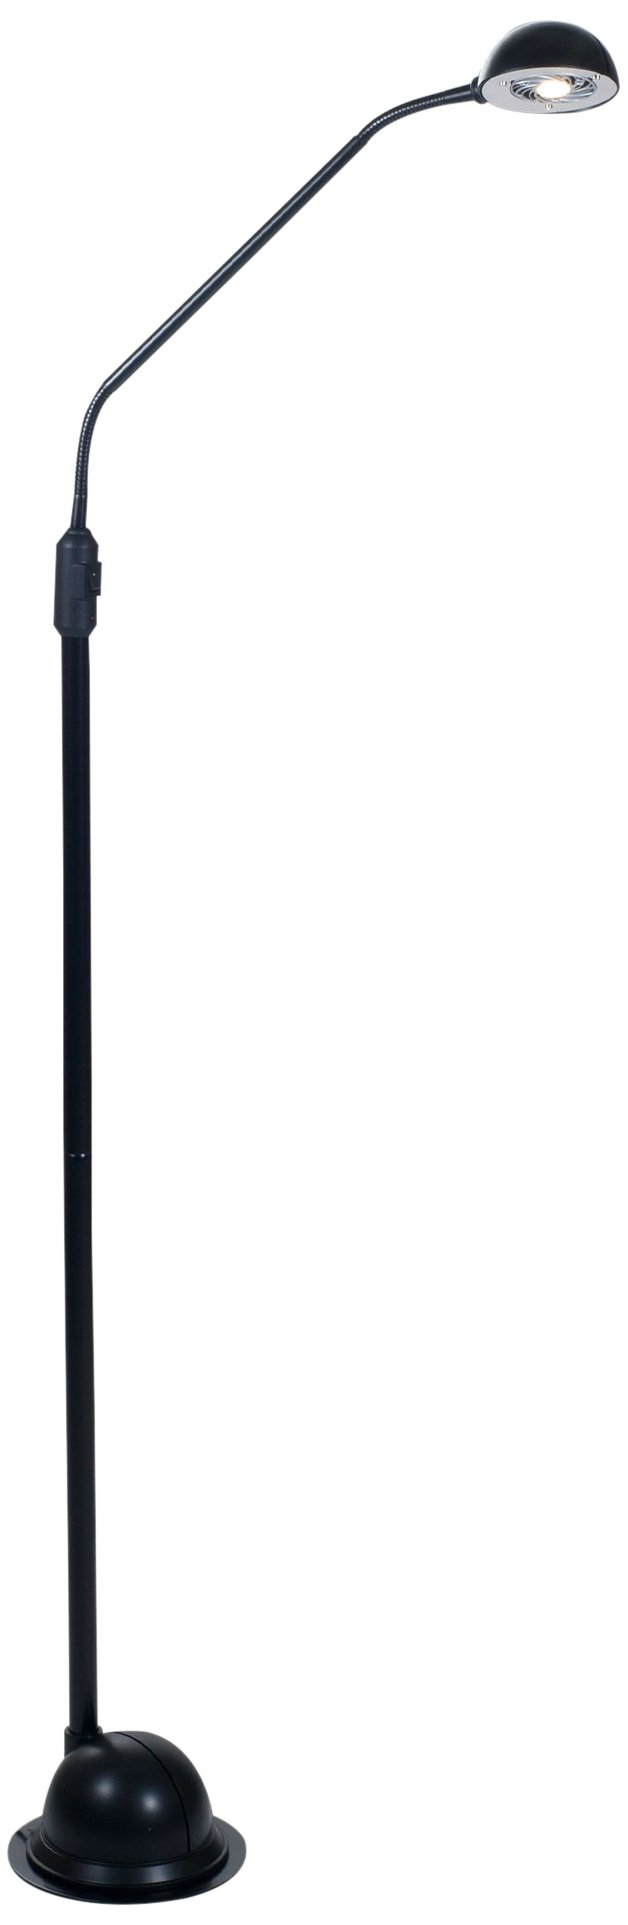 "Lavish Home 72-KD010F-B Modern High Power LED Floor Lamp, 61"" x 7"" x 7"", Black - Eco-Friendly, Energy Saving LED Lighting, Adjustable Neck, Easily Fits into Any Decor 9 LED Bulbs, Some Assembly Required, Plug Type: 2 Prong 73 inch Power Cord - living-room-decor, living-room, floor-lamps - 51QHU46uj3L -"